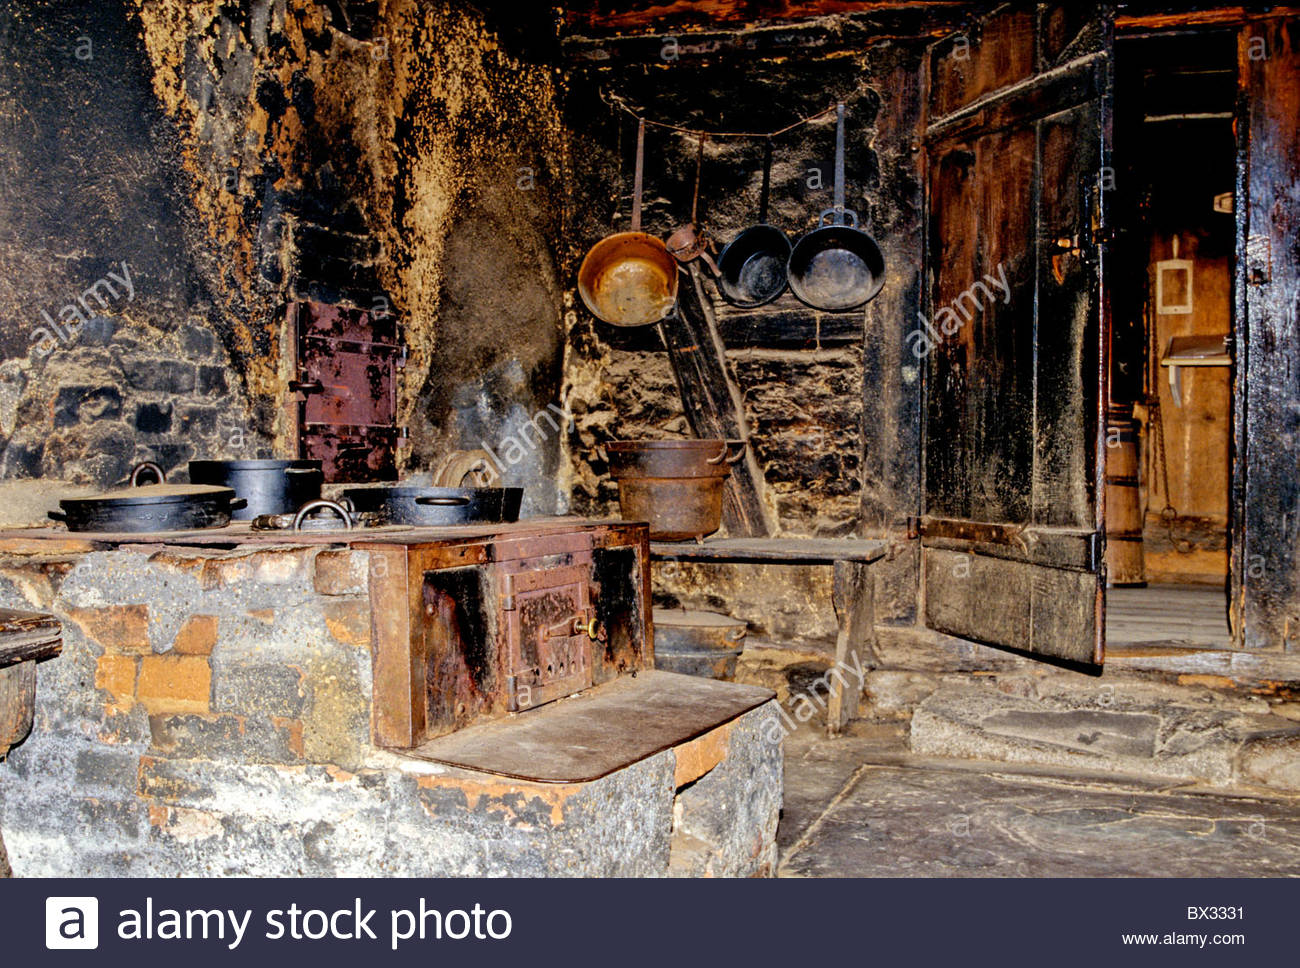 kitchen cuisine stove oven chimney fireplace oven cooker stove stock